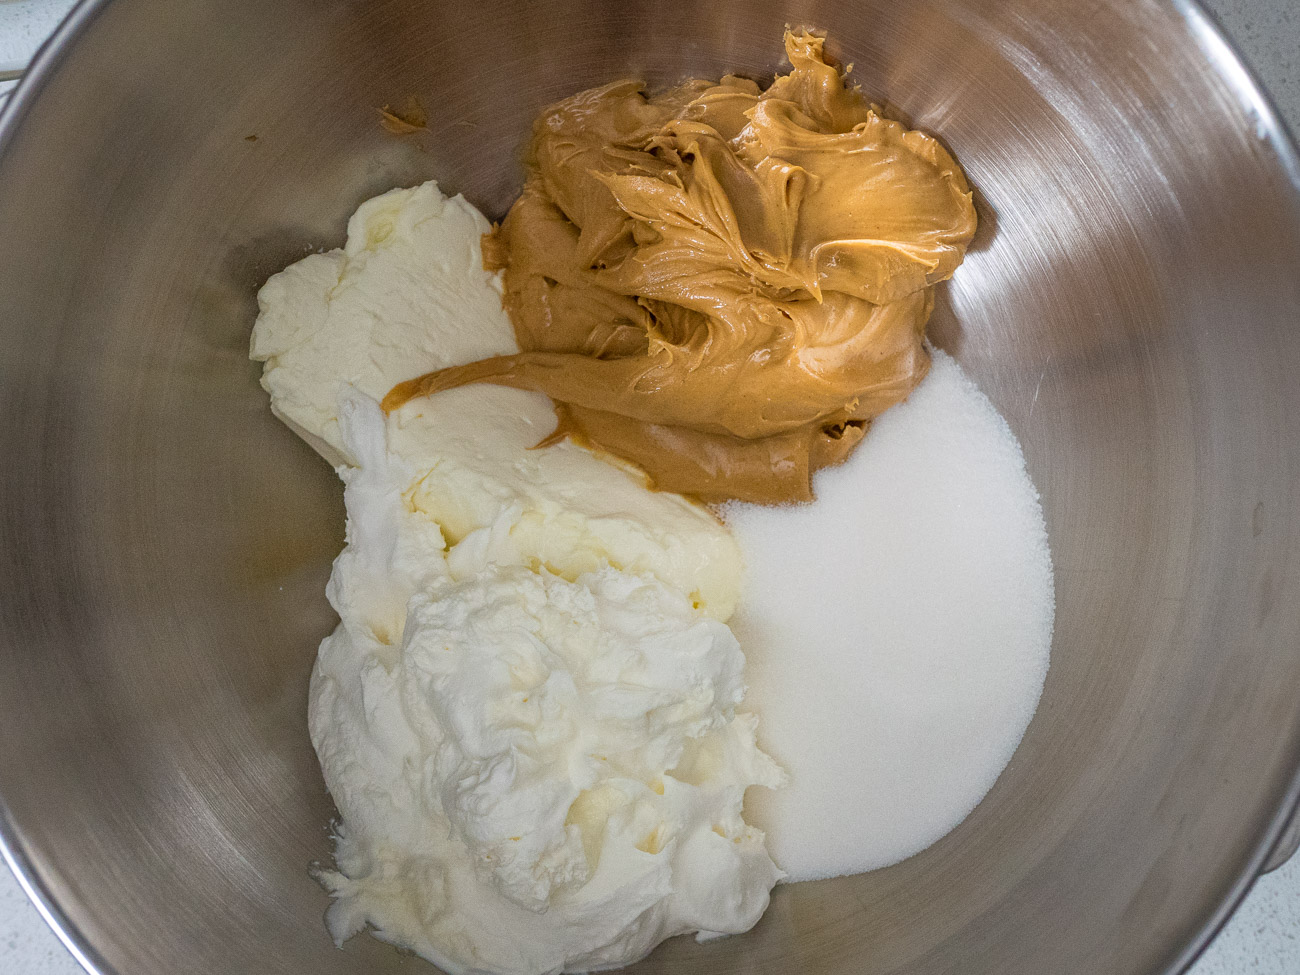 In a large bowl combine cream cheese, 1 cup peanut butter, and sugar and blend with an electric mixer. Fold in frozen whipped topping or whipped cream.